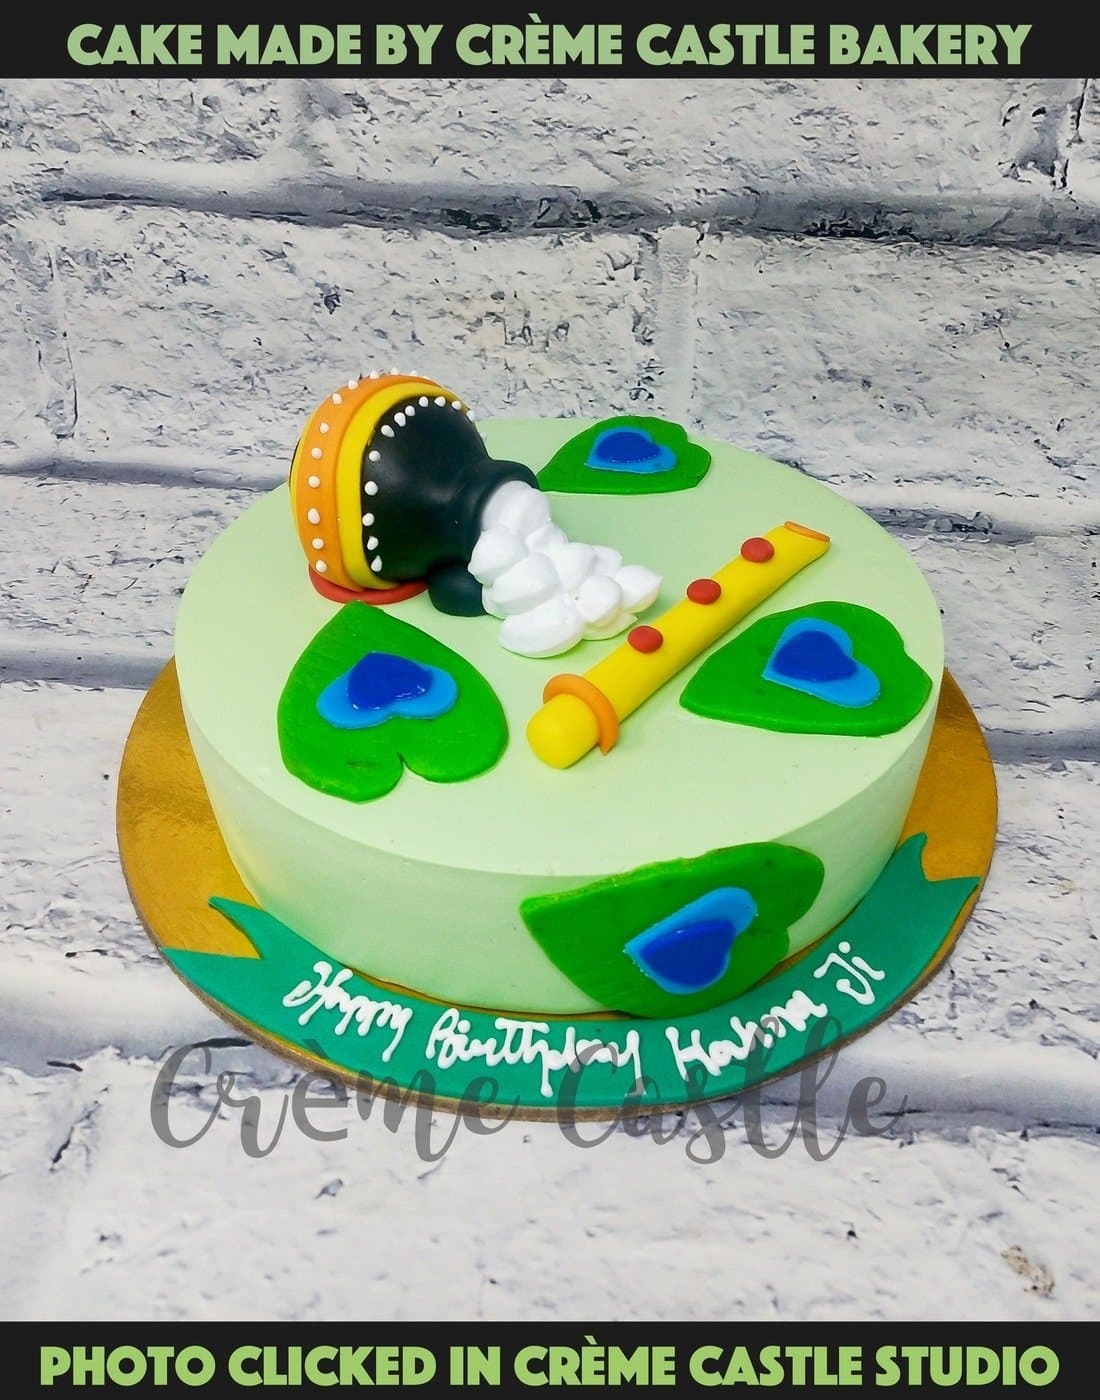 A Janmashtmi Theme cake with flute and matki on top